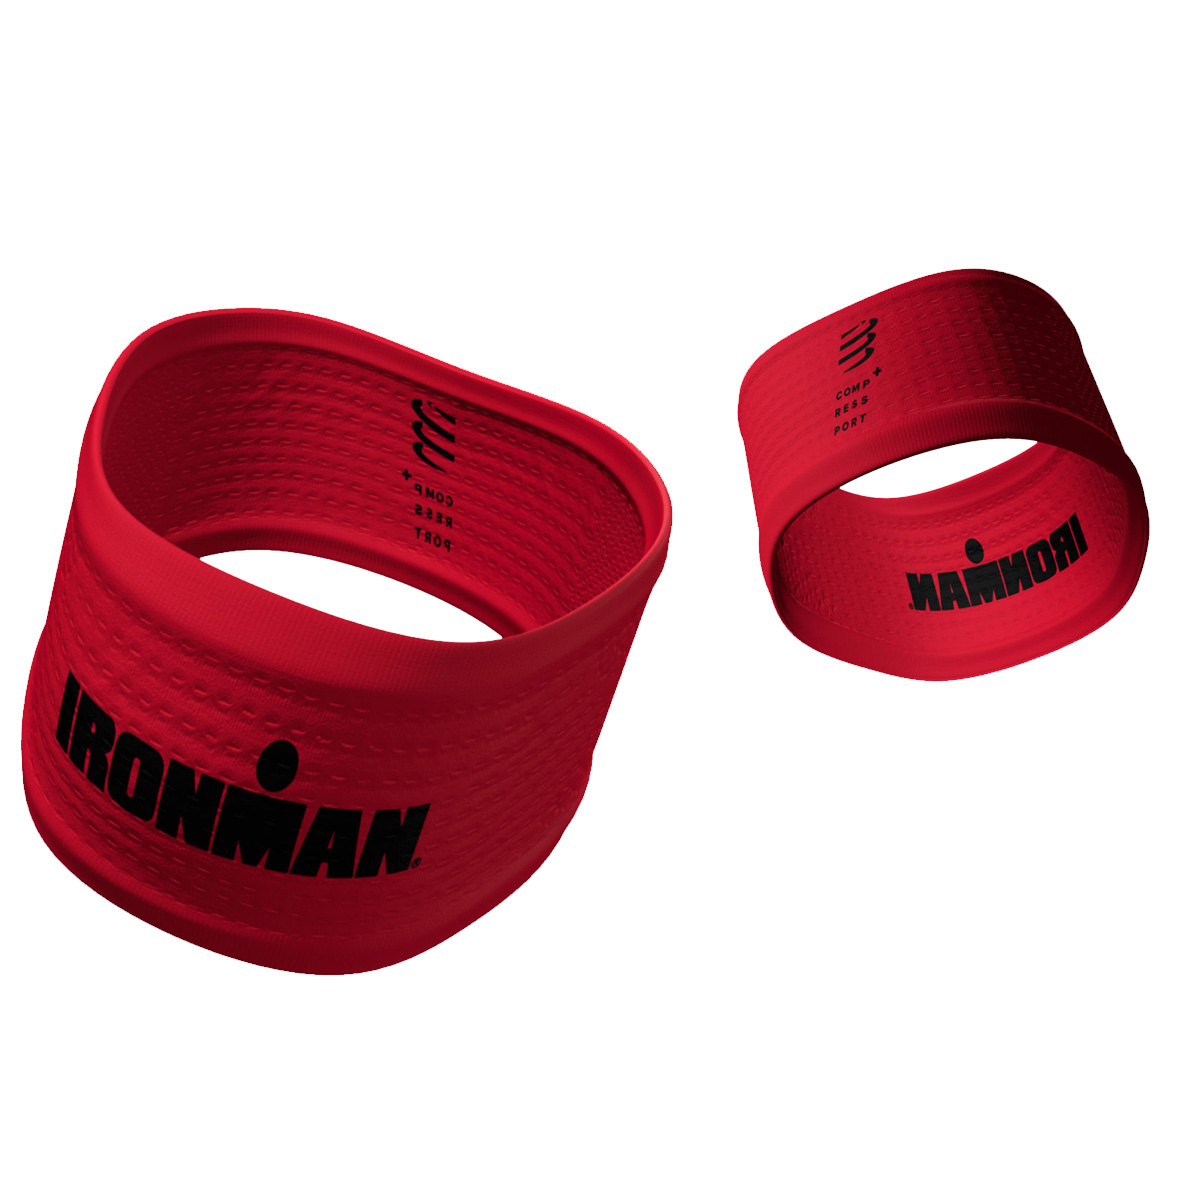 IRONMAN COMPRESSPORT HEADBAND